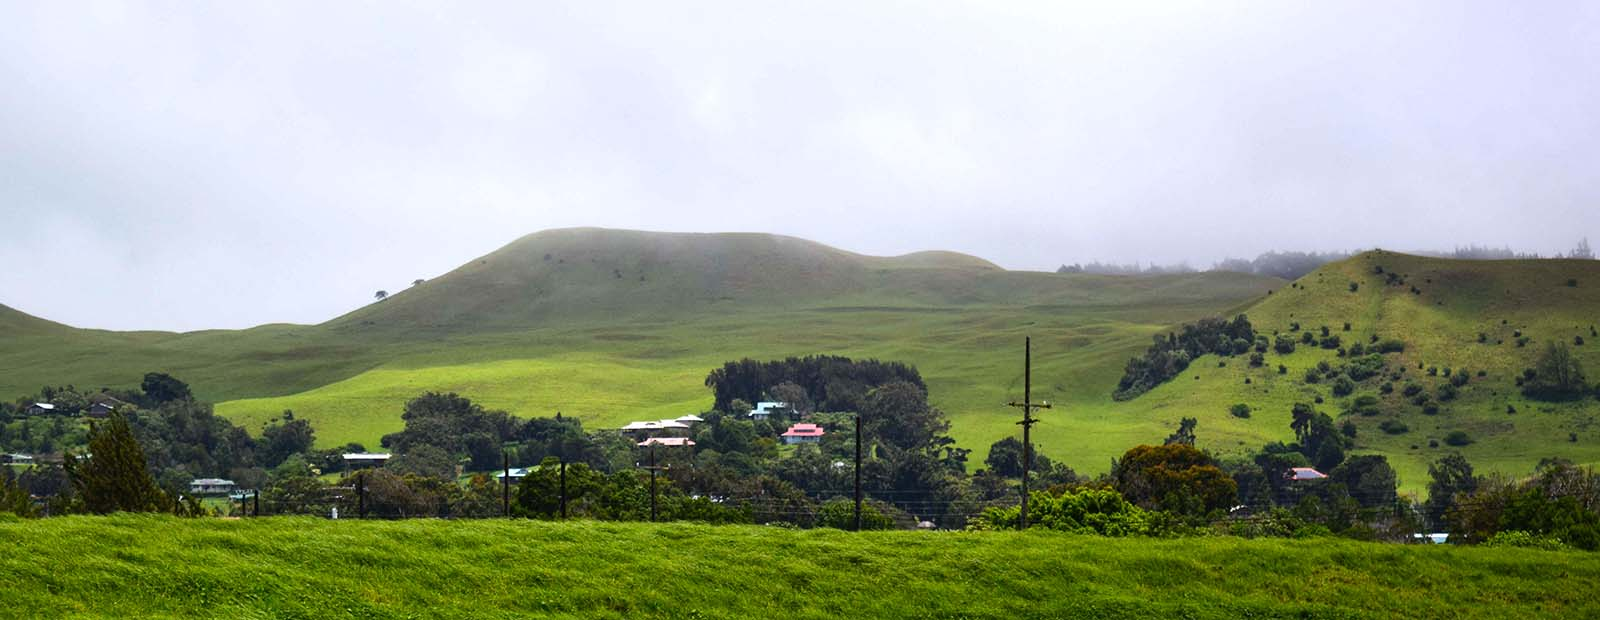 waimea-big-island-green-hills-1